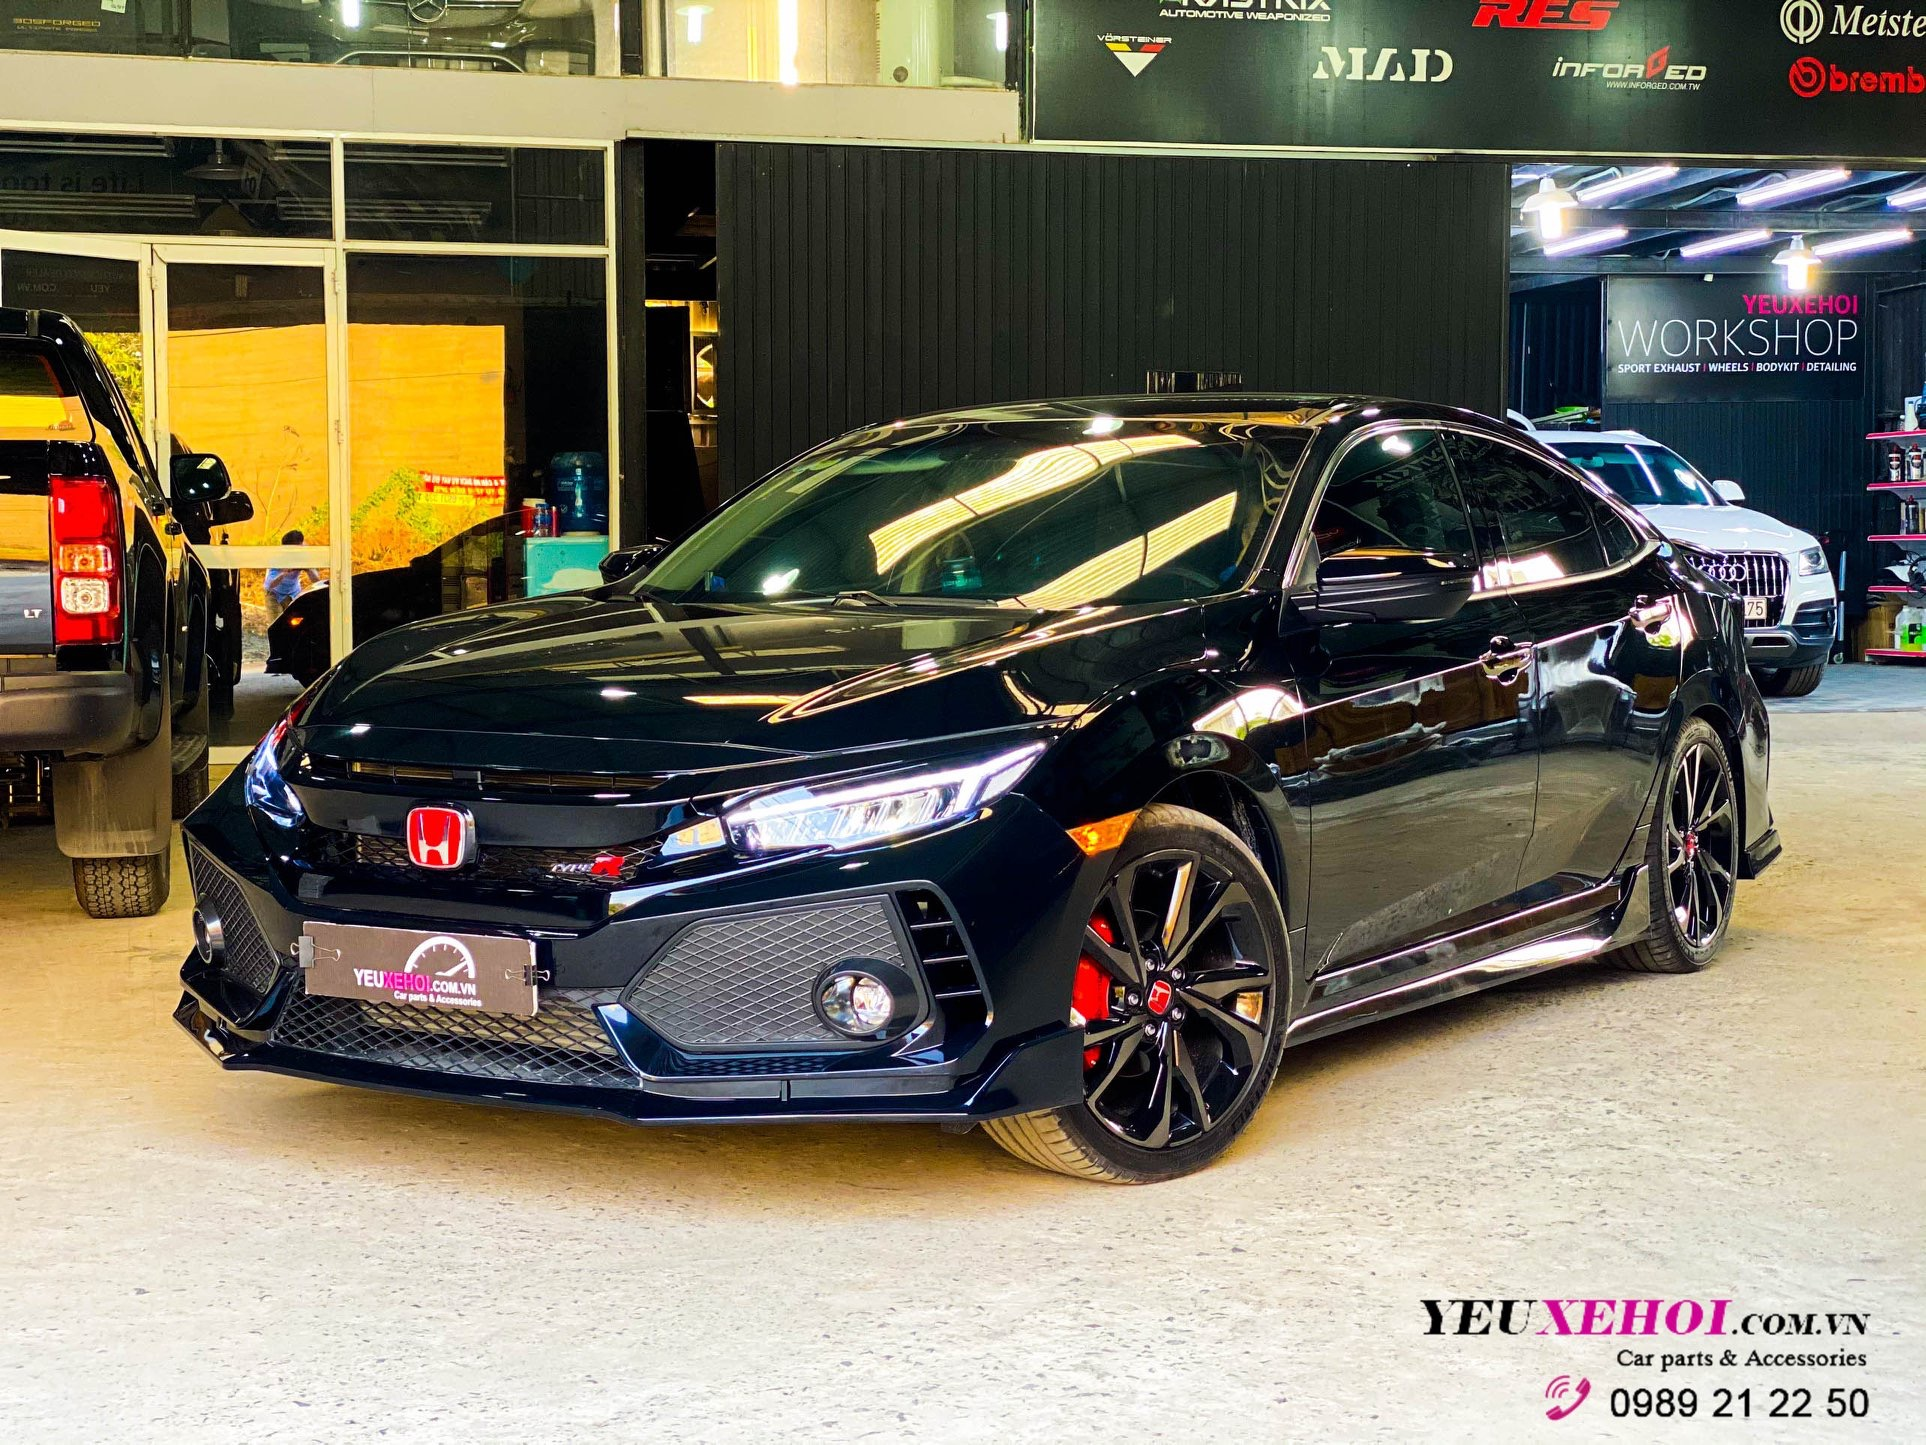 BODYKIT TYPE R / HONDA CIVIC